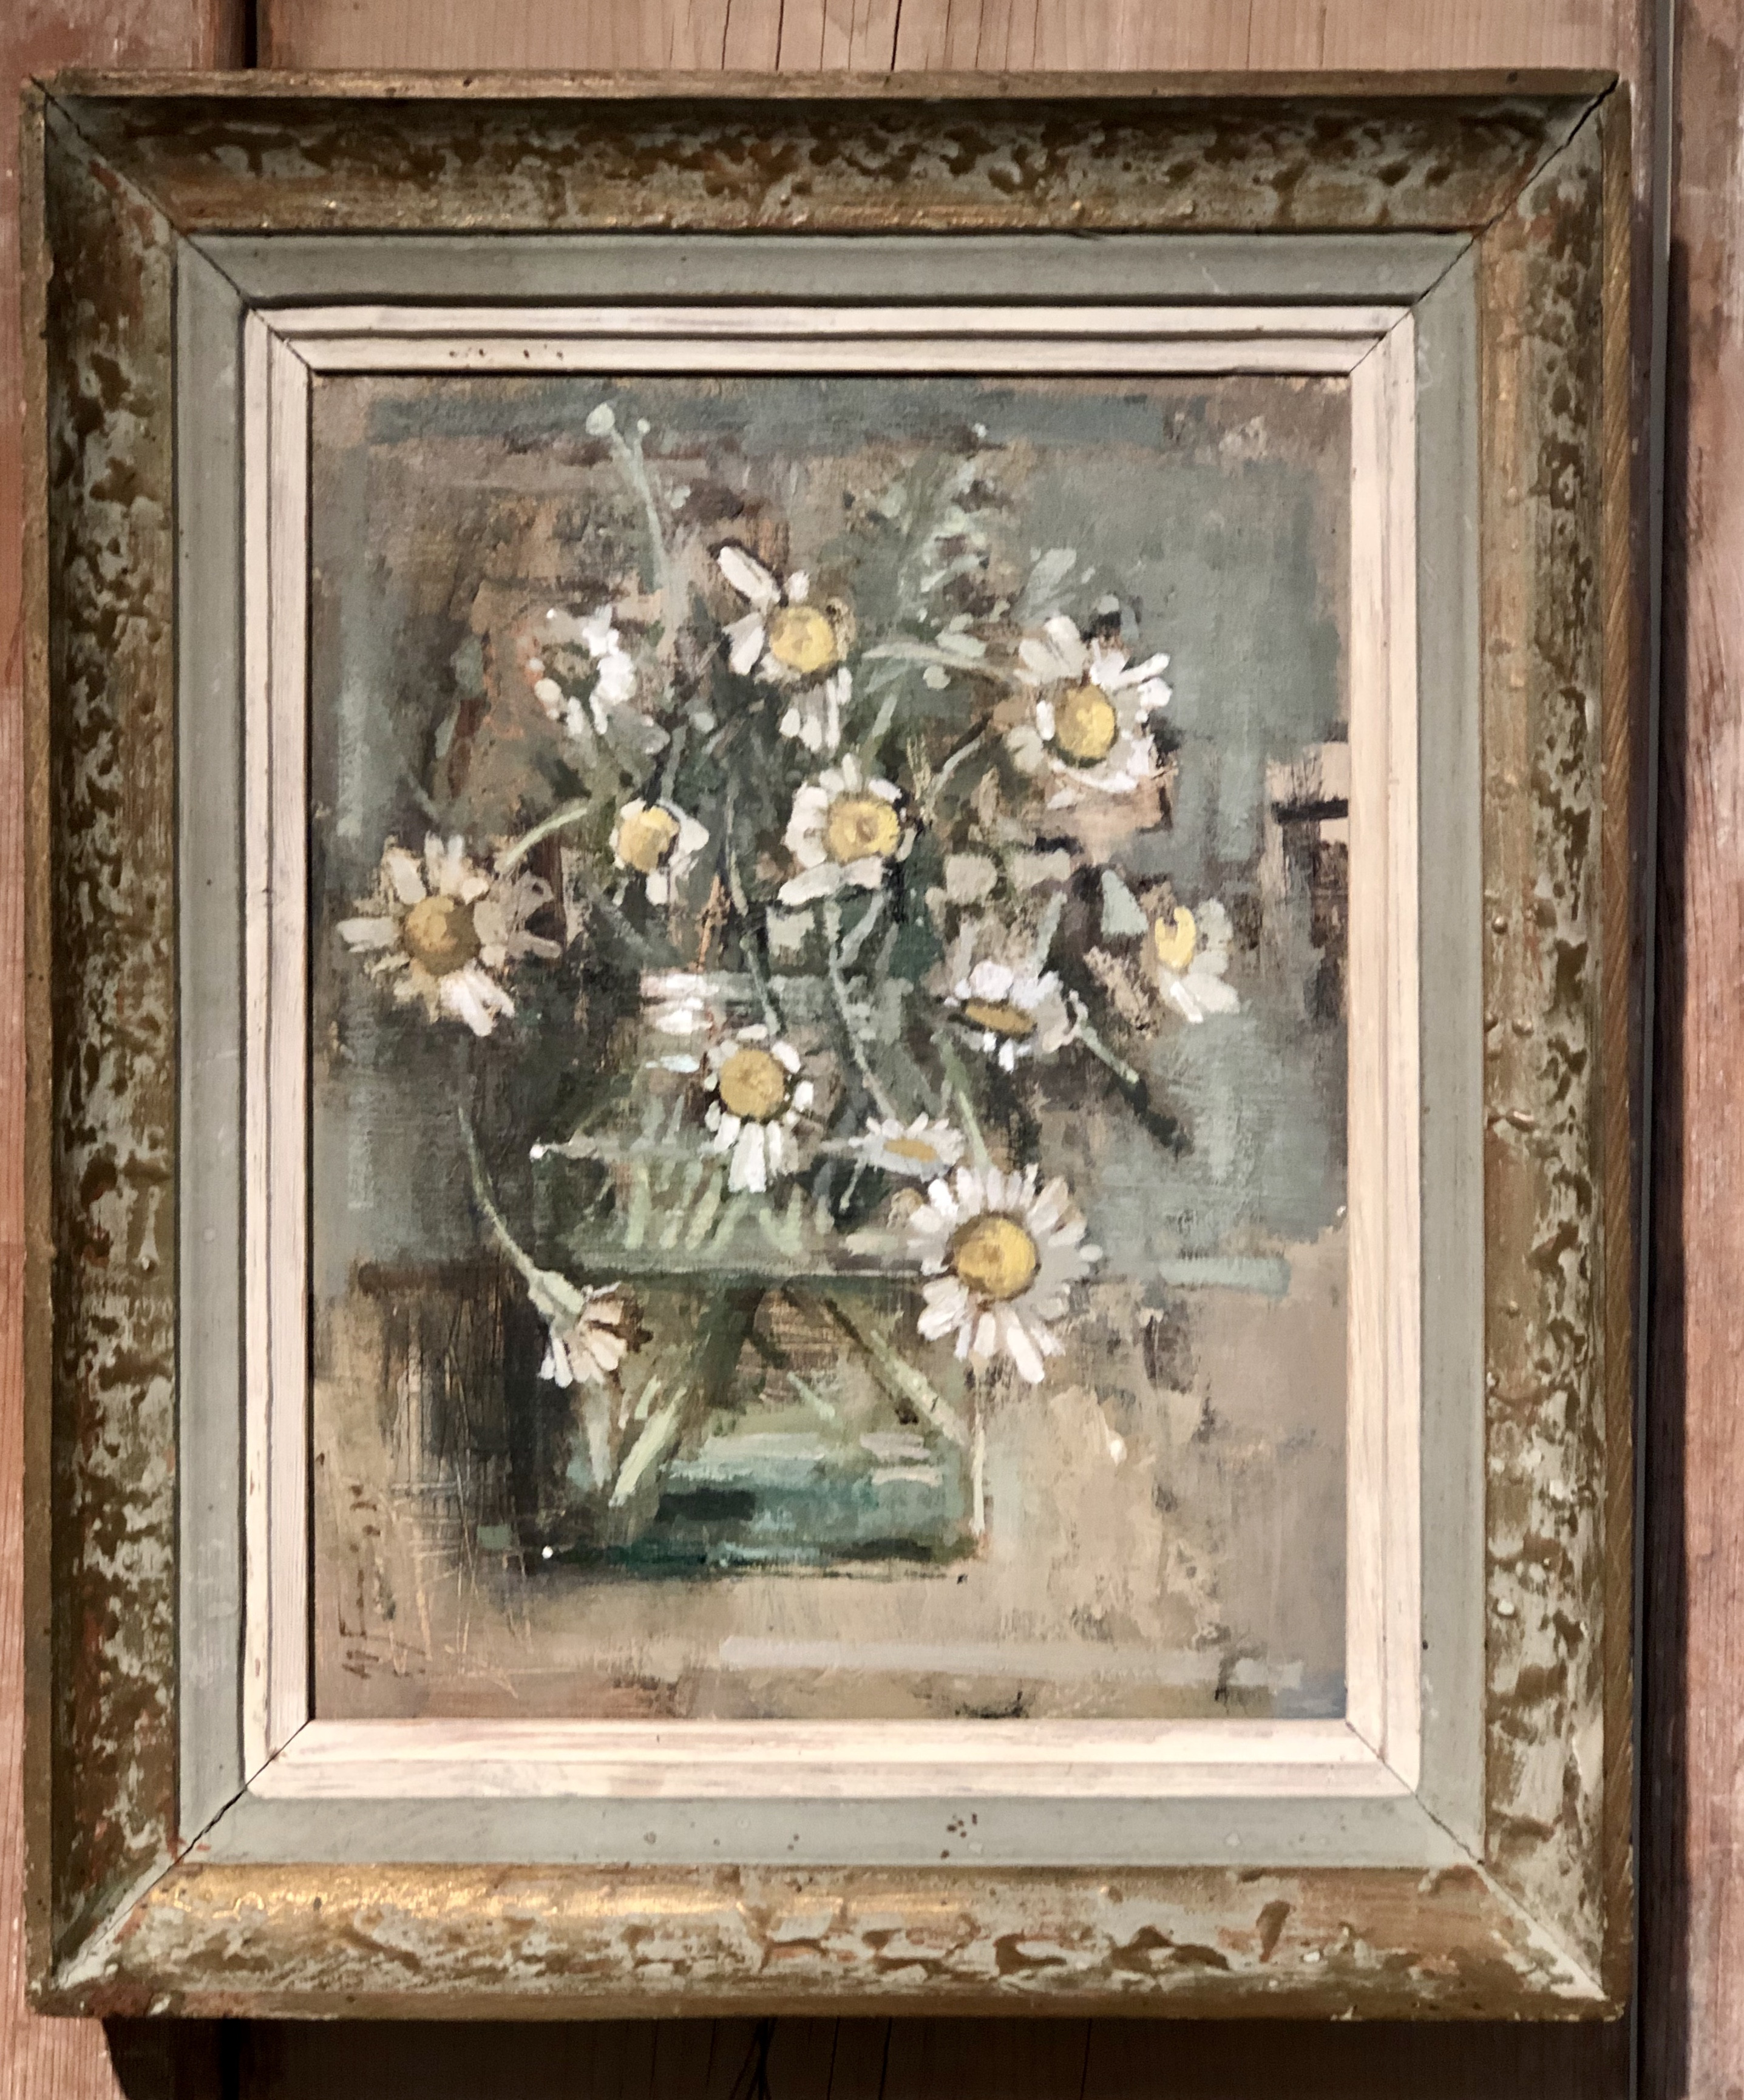 'A Clump of Daisies' by Andrew Douglas-Forbes